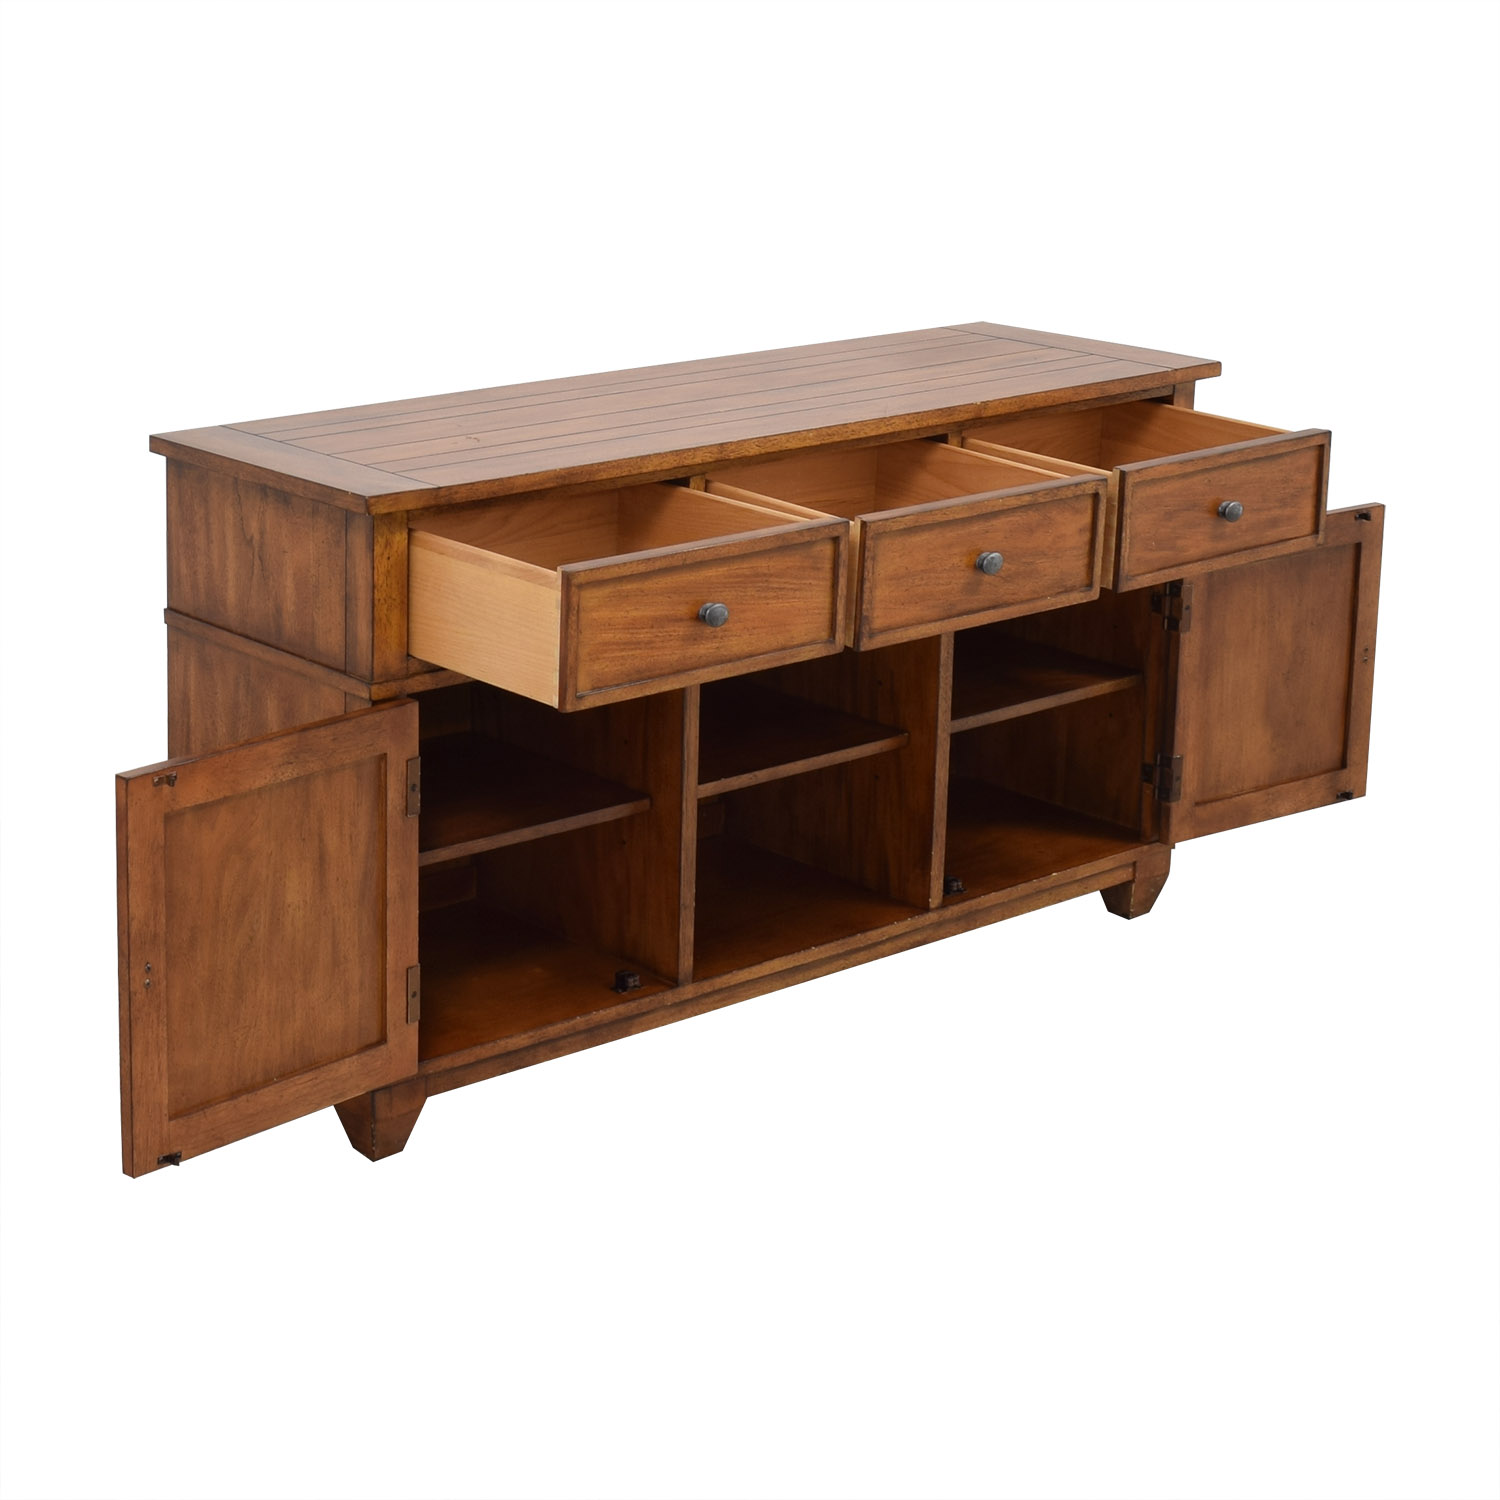 Ethan Allen Ethan Allen Gregory Dining Console Cabinets & Sideboards